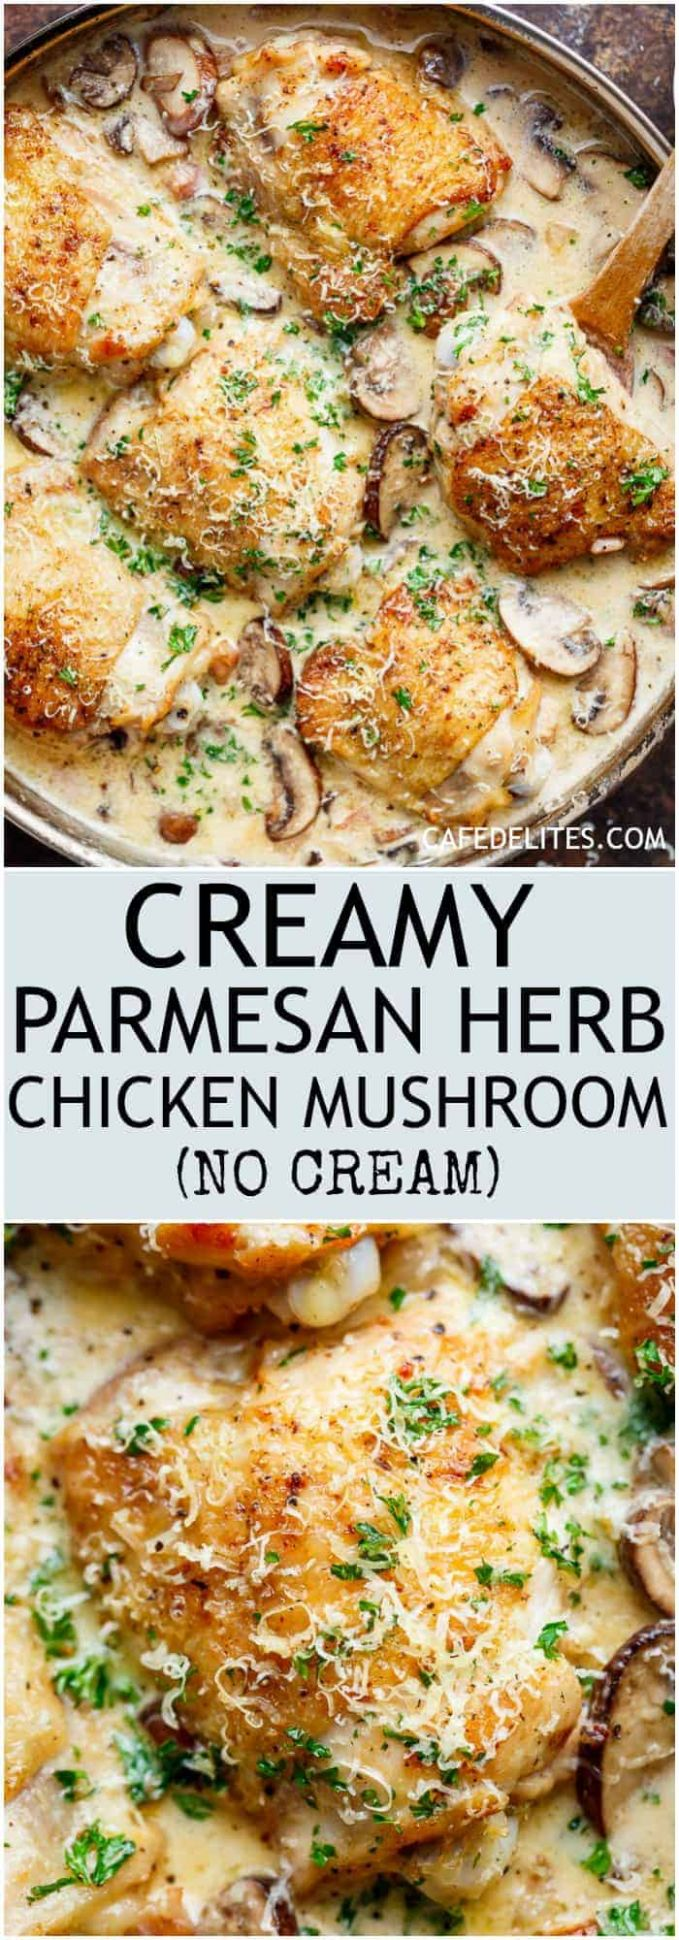 Creamy Parmesan Herb Chicken Mushroom (NO CREAM OPTION) - Cafe Delites - Dinner Recipes No Chicken